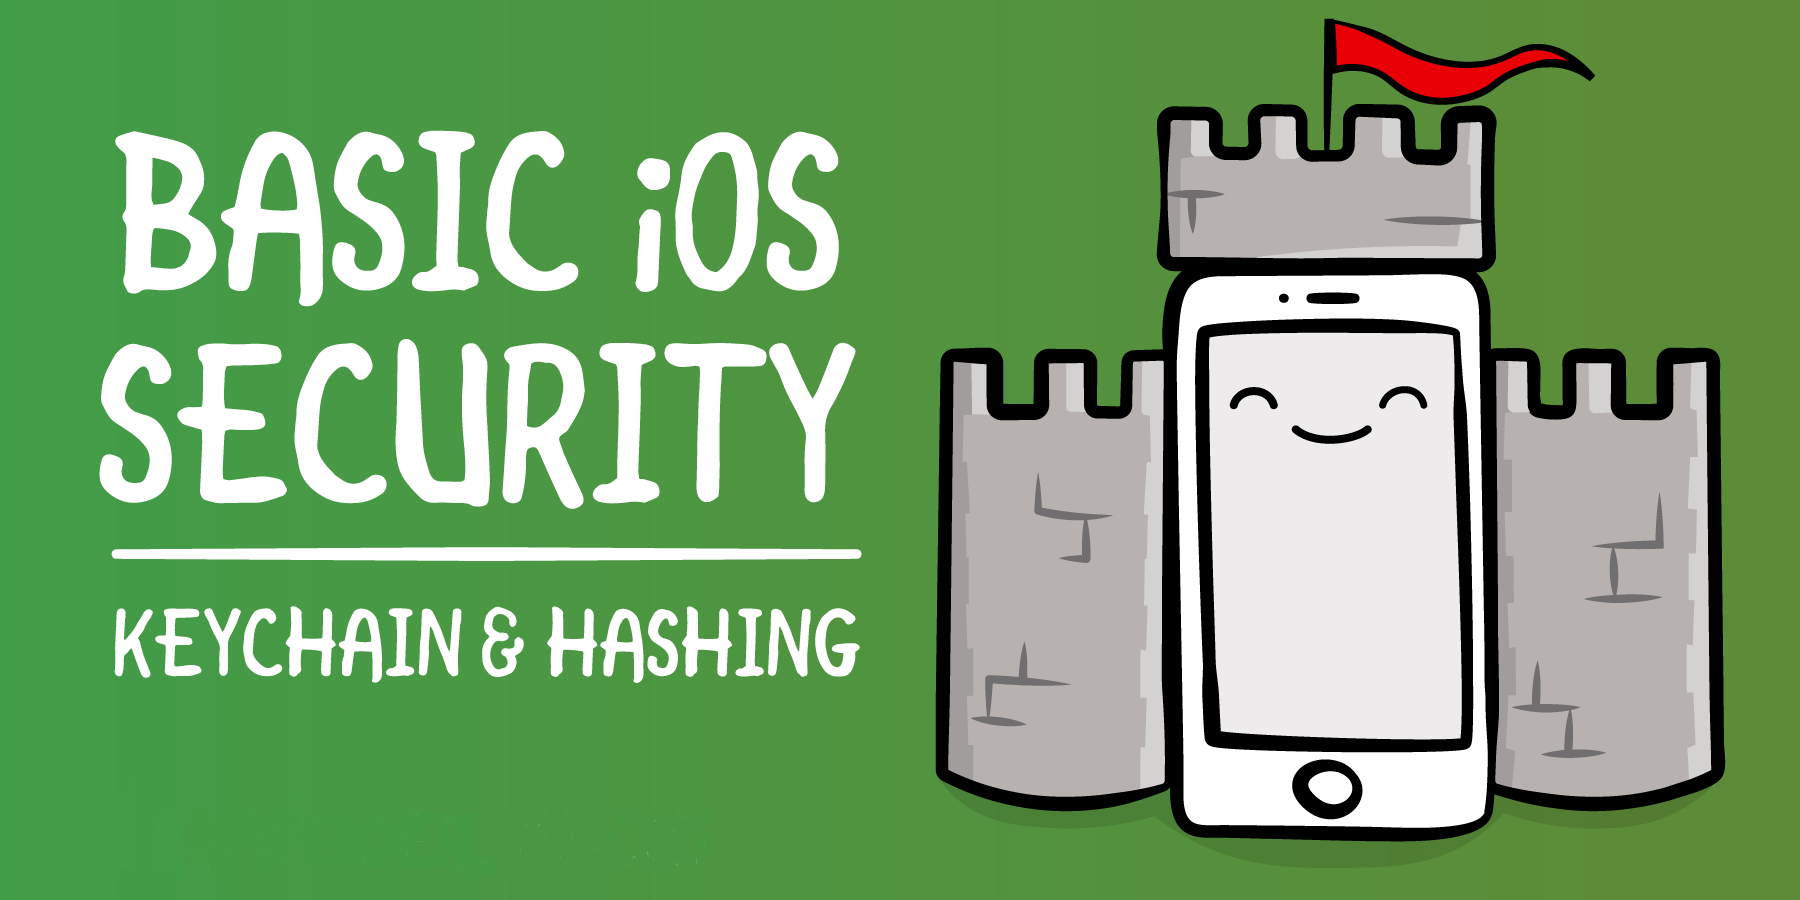 Basics of Security: Keychain and Hashing